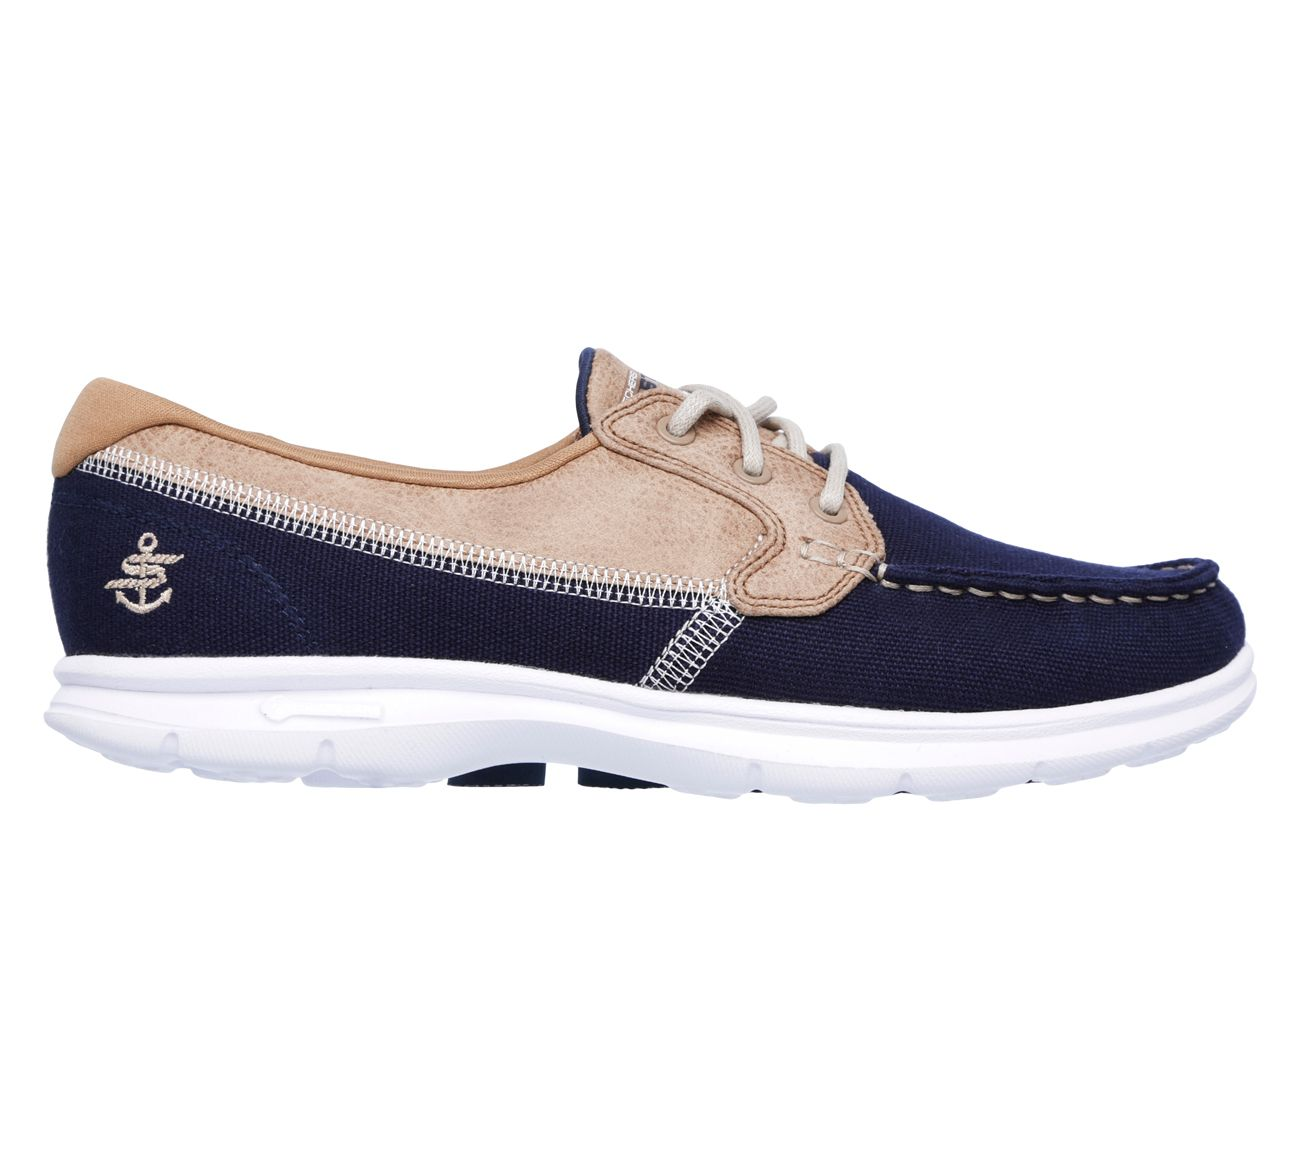 Go Step Seashore Skechers Boat Shoes Leather